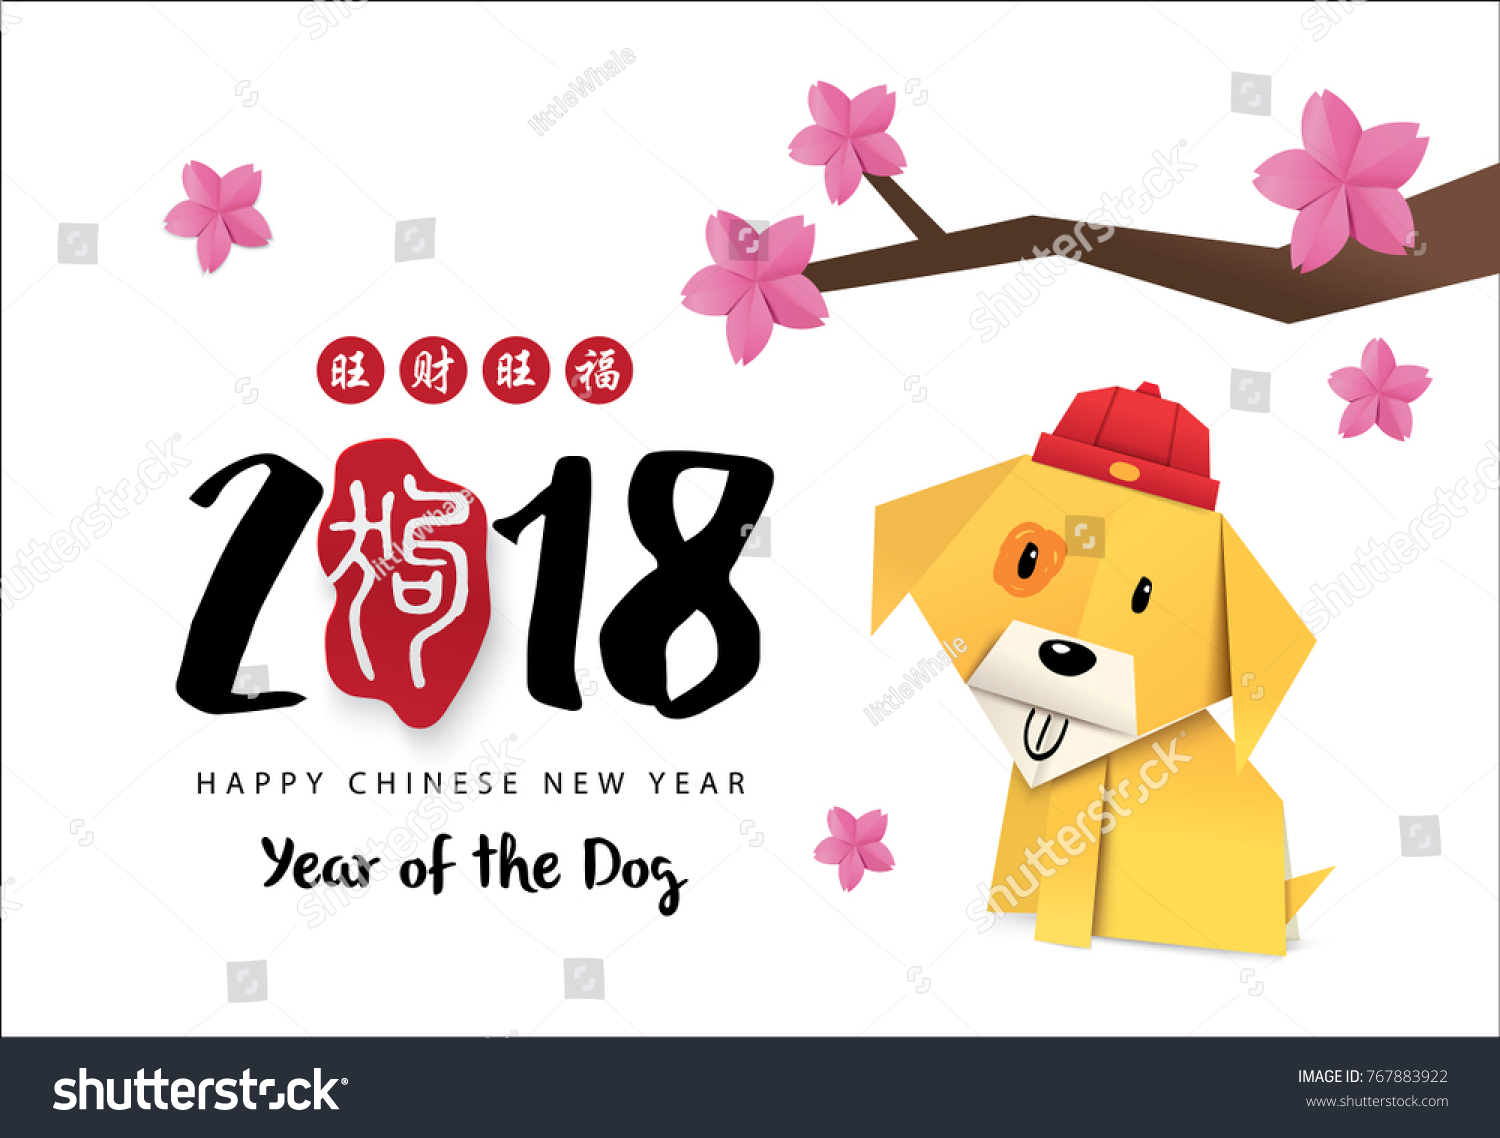 2018 chinese new year greeting card design with origami dog and flower chinese translation